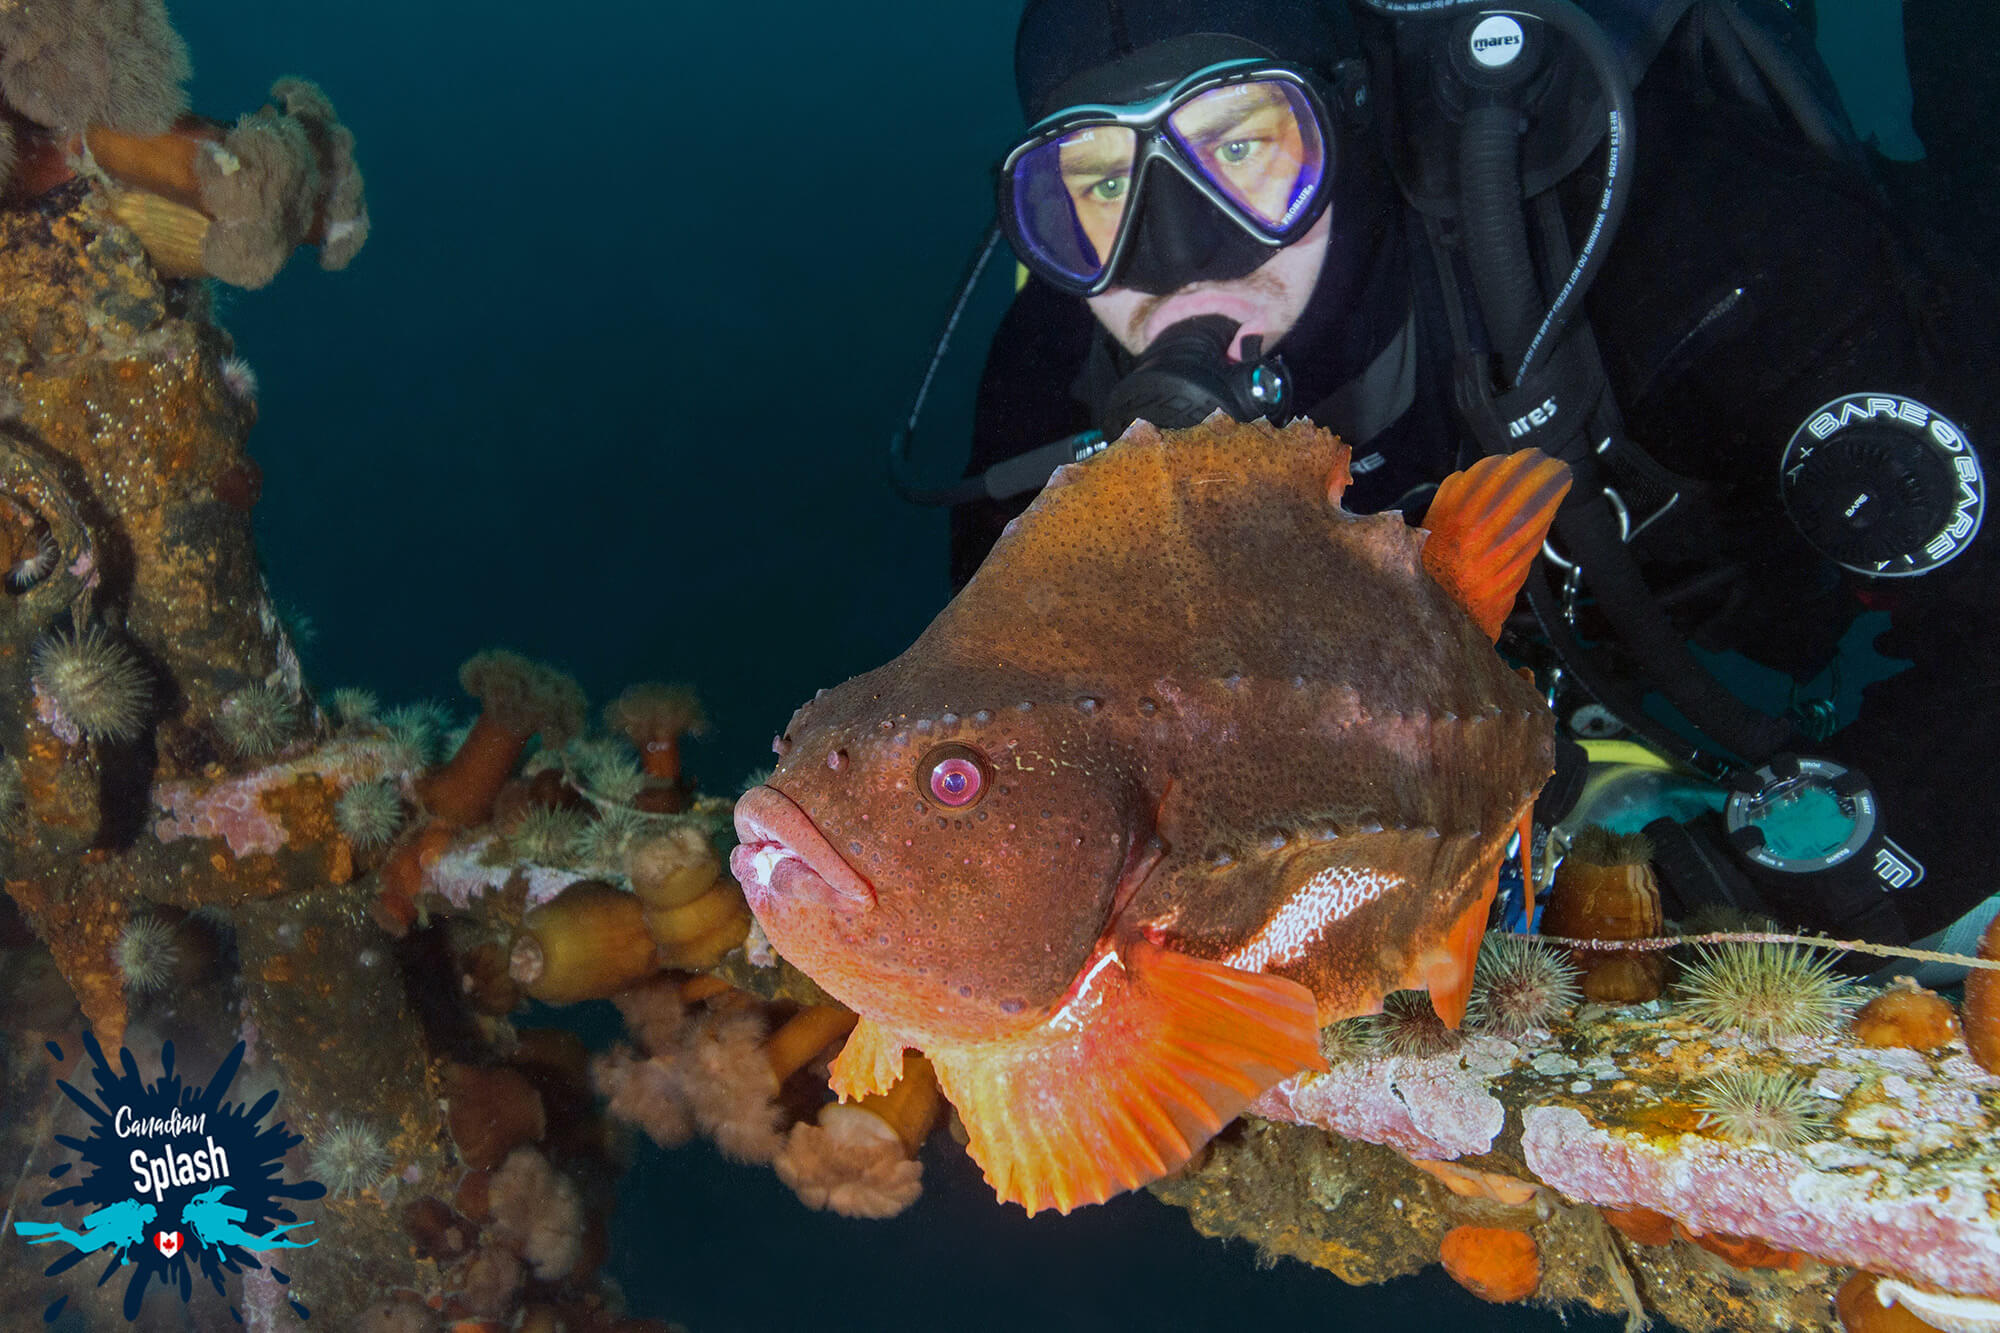 Joey And Lumpfish On The Lord Strathcona Shipwreck In Newfoundland And Labrador, Canadian Splash Scuba Diving